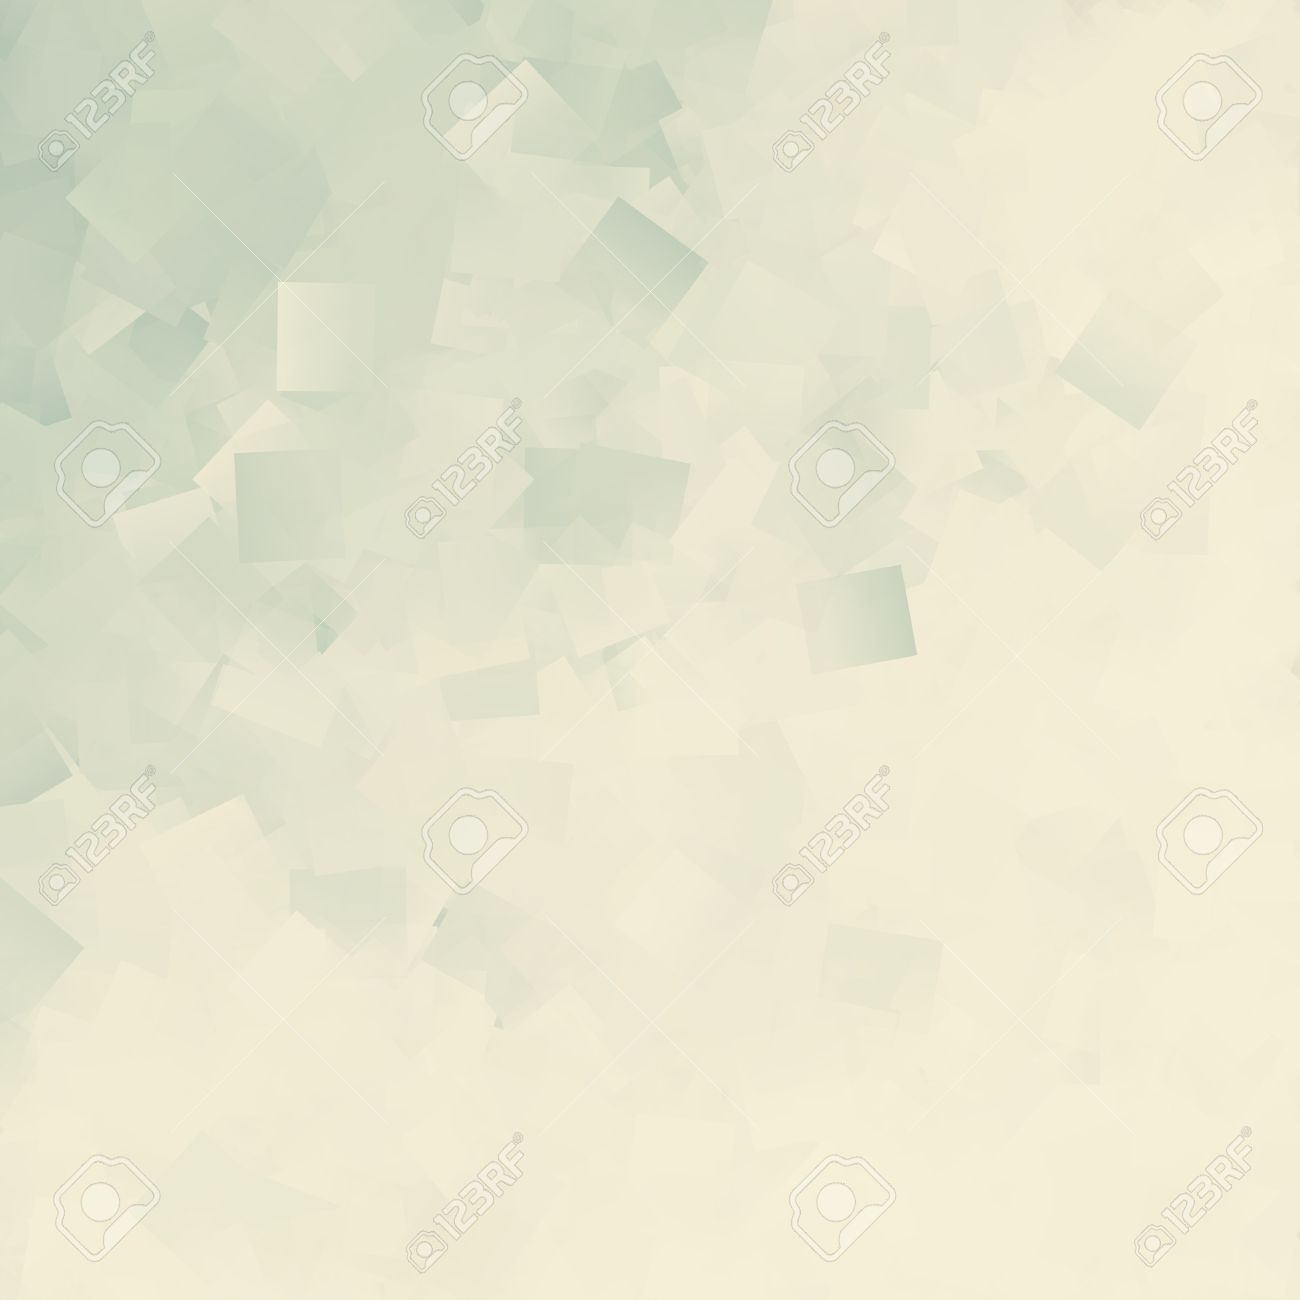 Bright Abstract Background Decorative Cubes Pattern Texture, May Use As  Banner Or Business Card Template